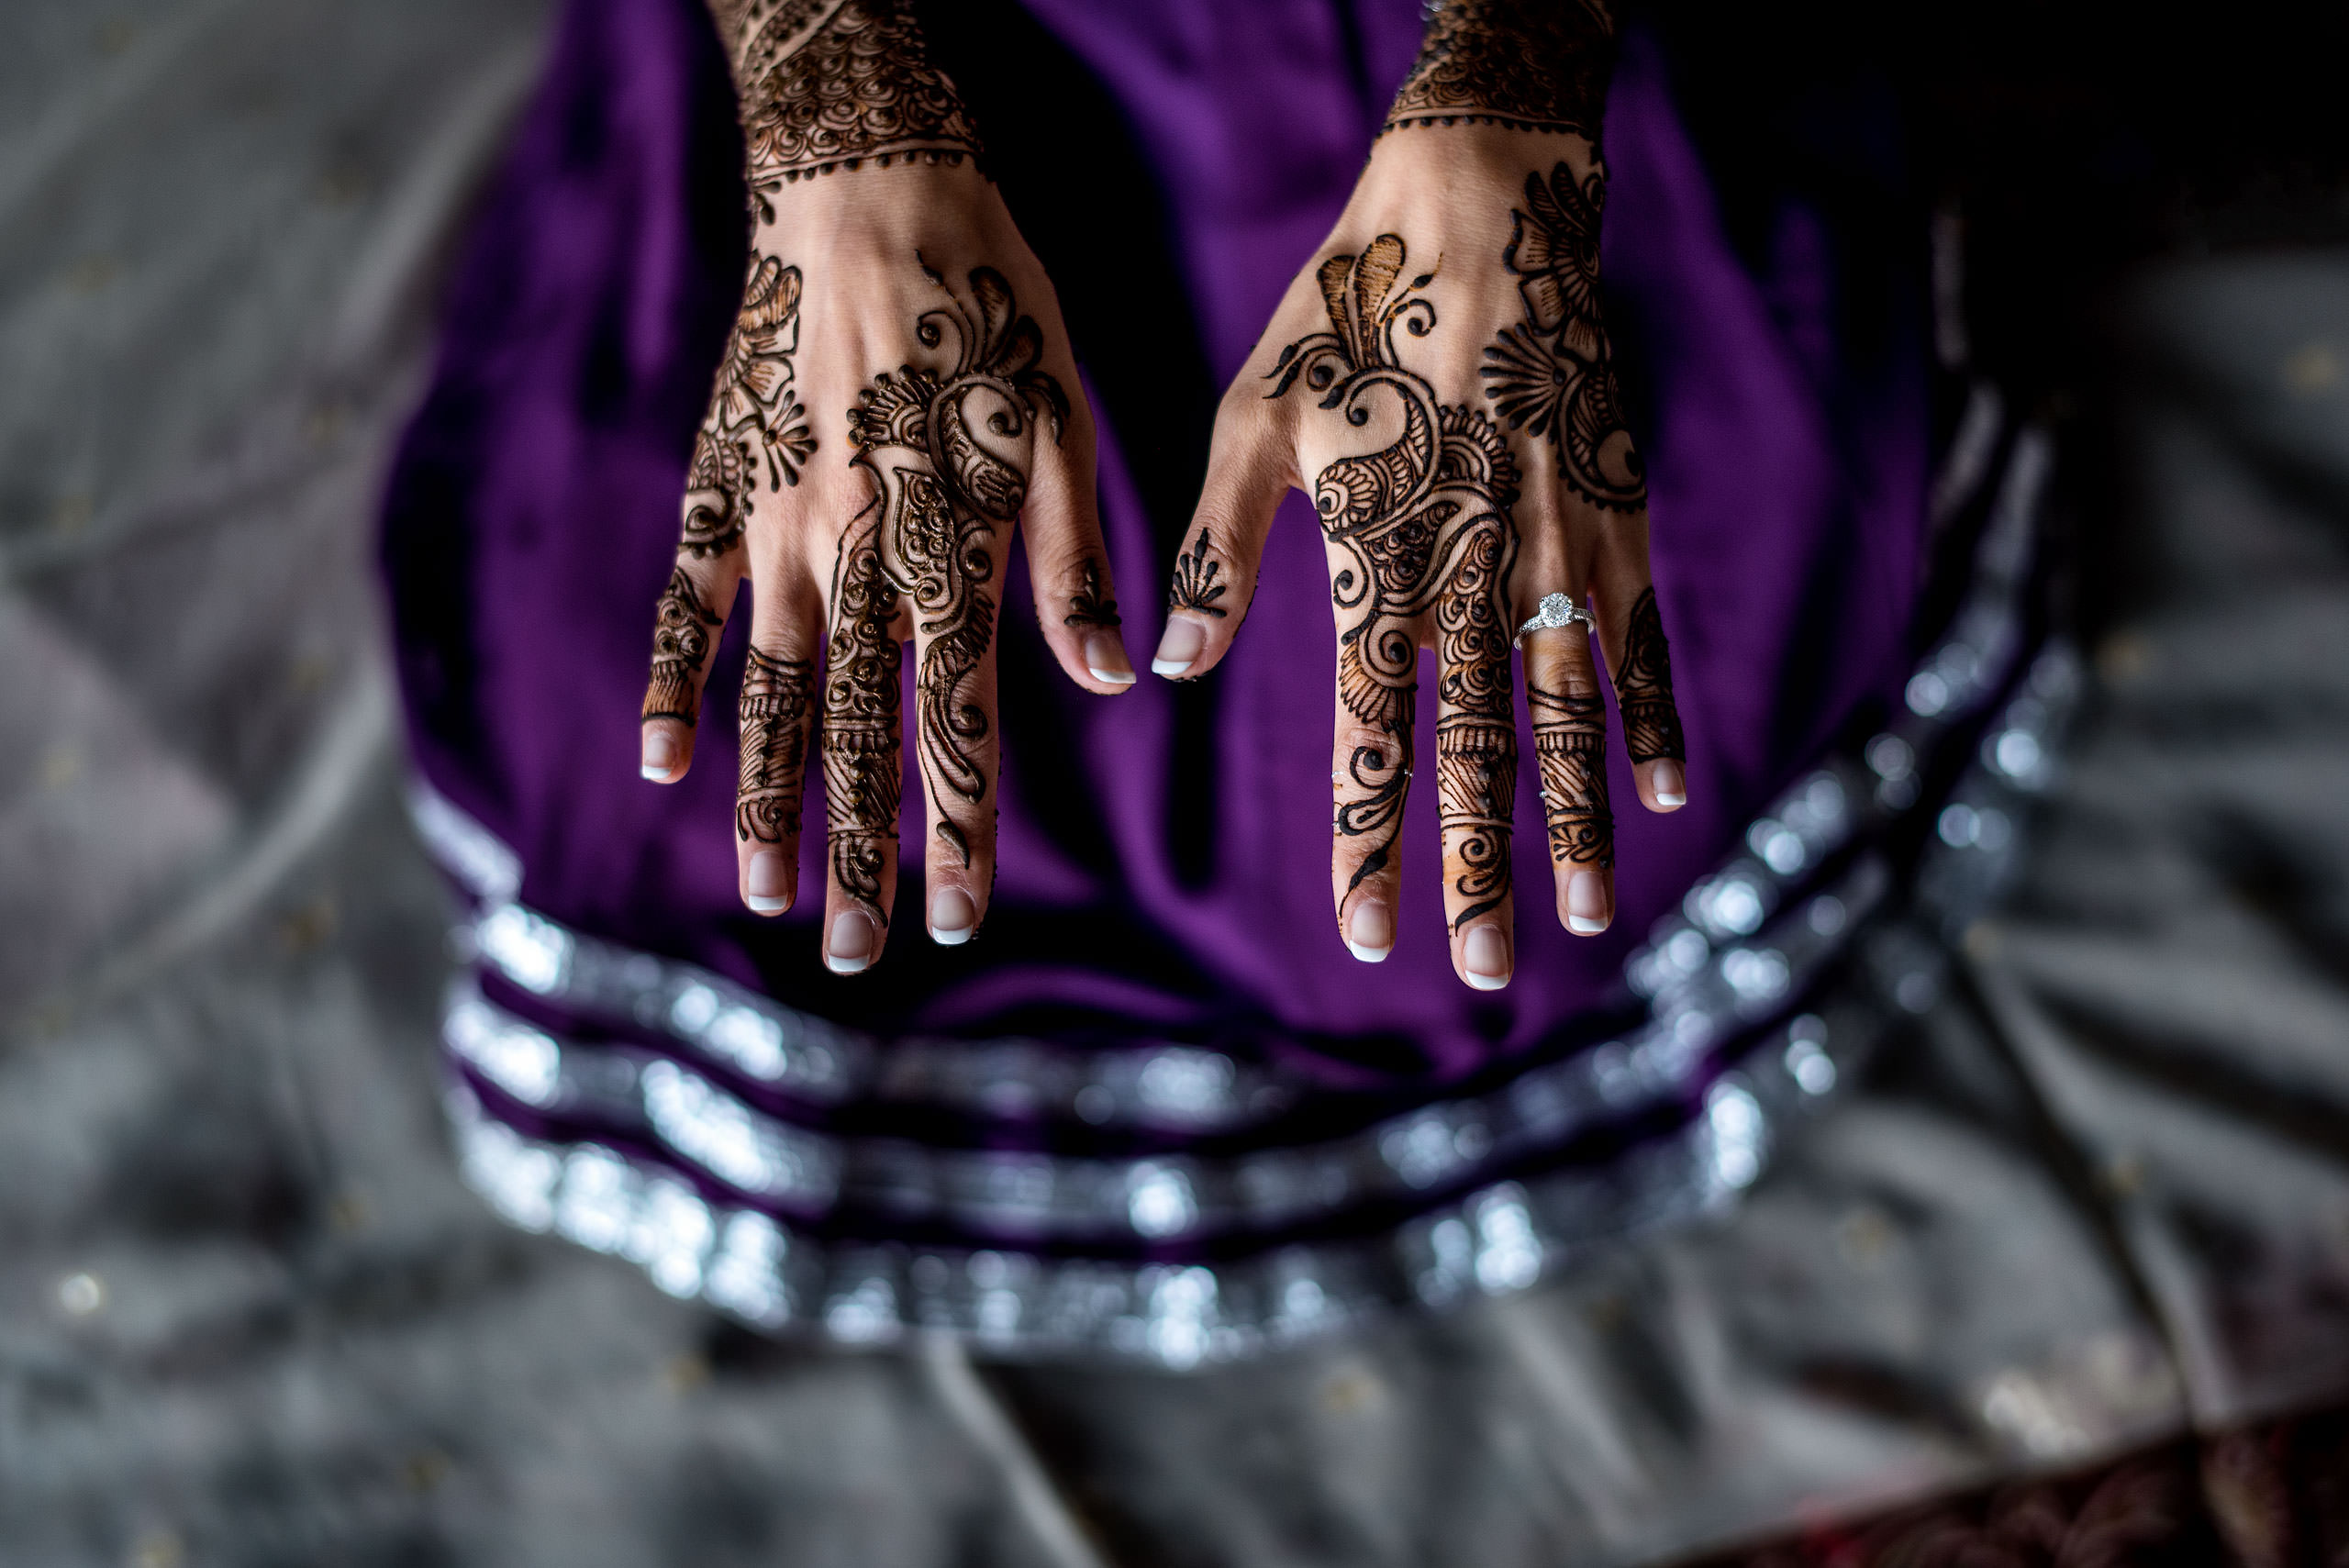 indian bride hand details by top calgary wedding photographer sean leblanc